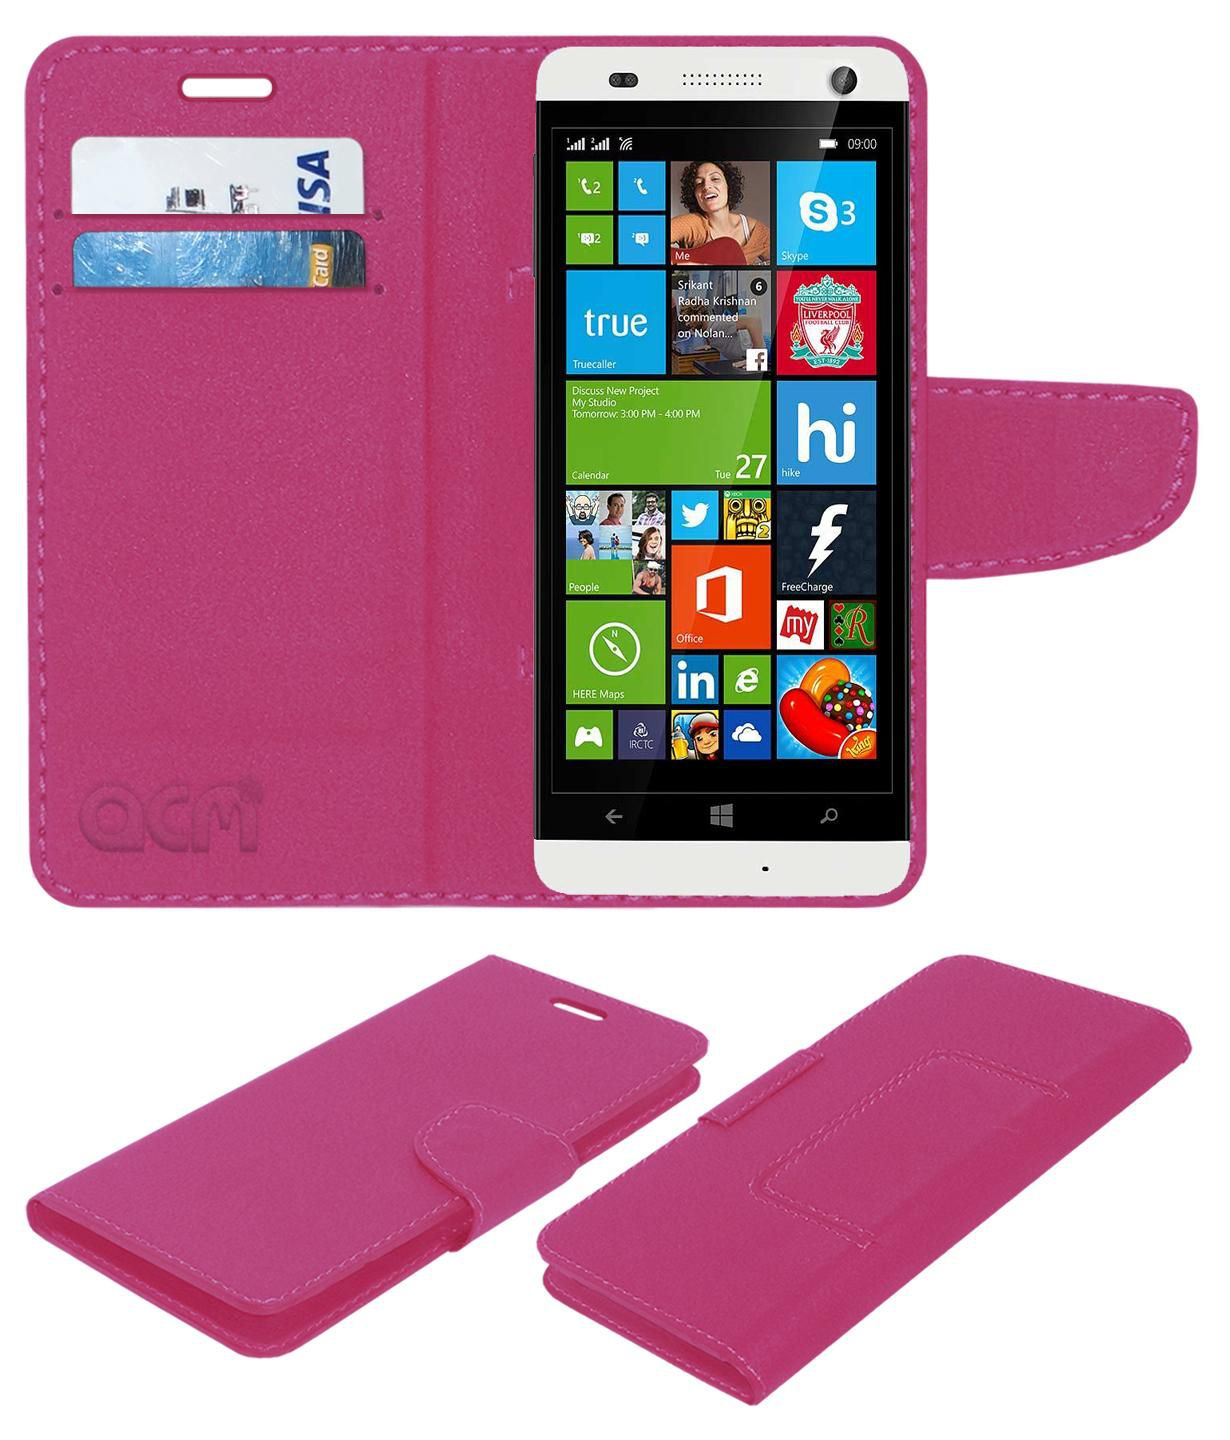 Xolo Q1000 Flip Cover by ACM - Pink